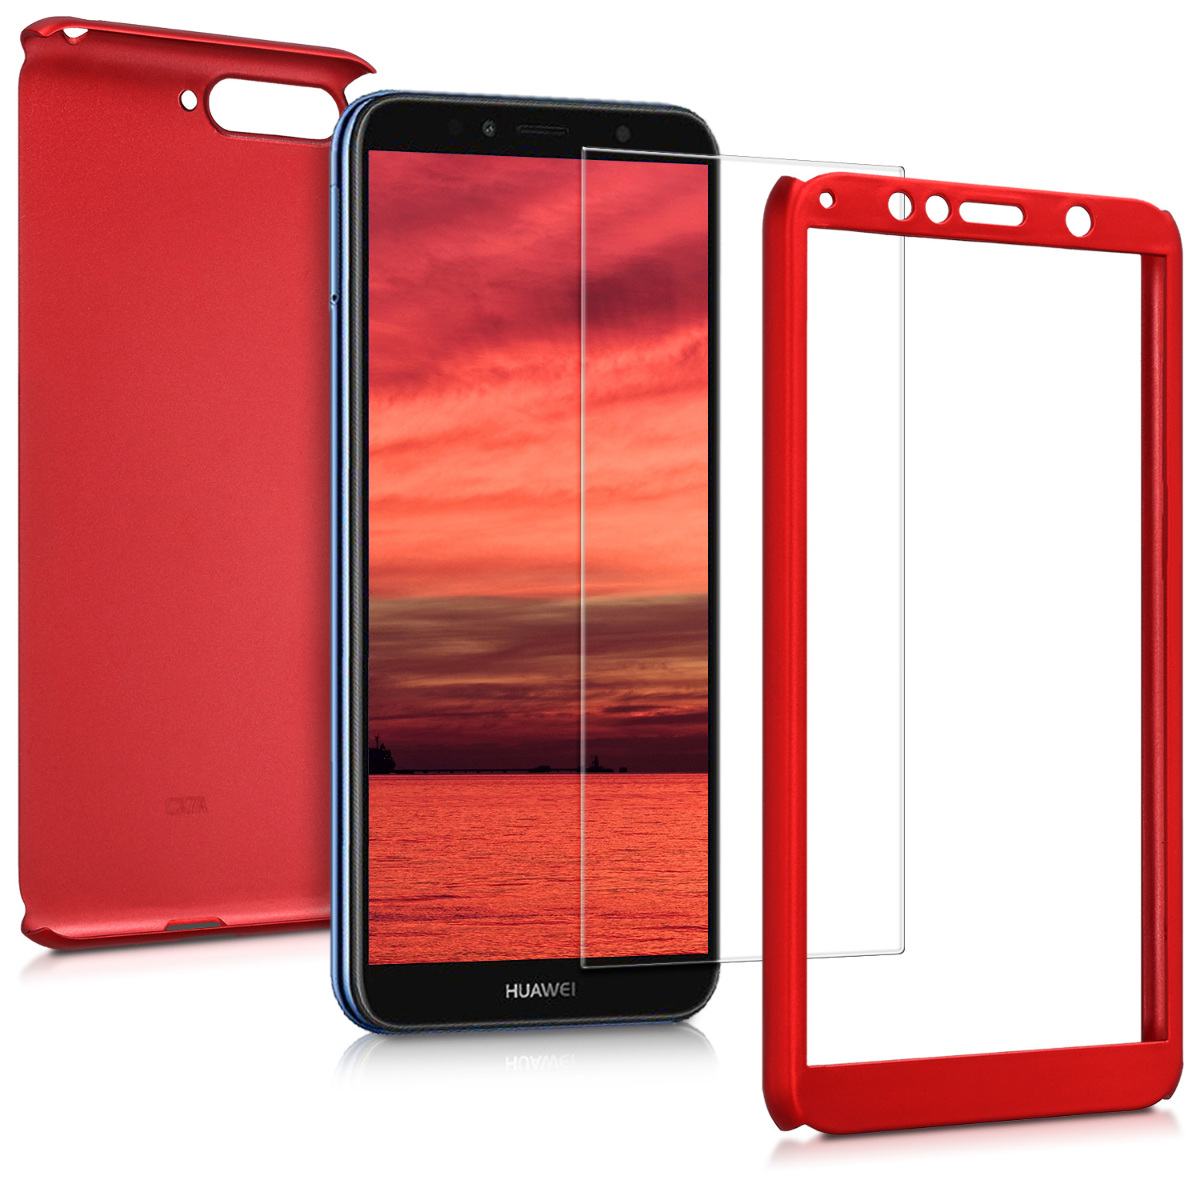 KW Θήκη Full Body with Screen Protector - Huawei Y6 (2018)- Metallic Dark Red (45639.36)